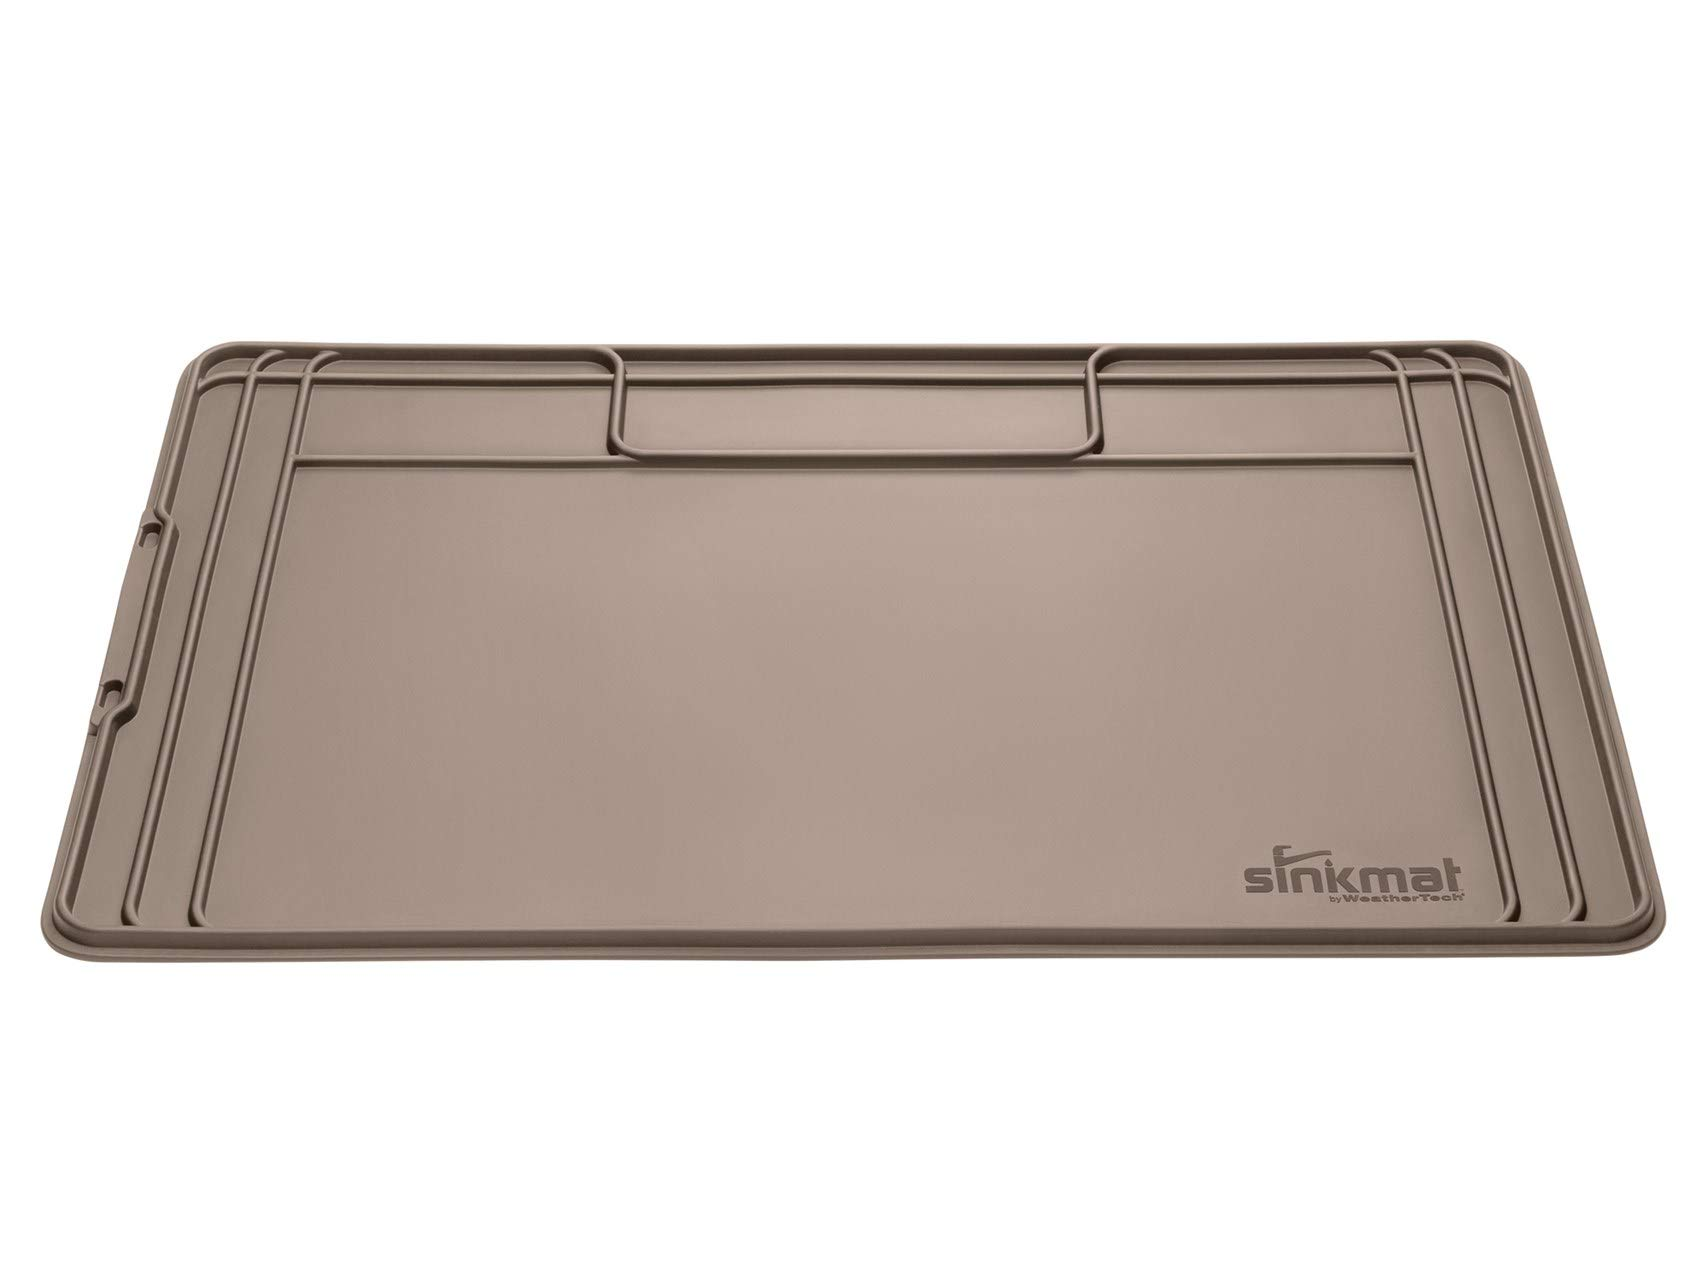 WeatherTech SinkMat - Under the Sink Cabinet Protection Mat - Tan by WeatherTech